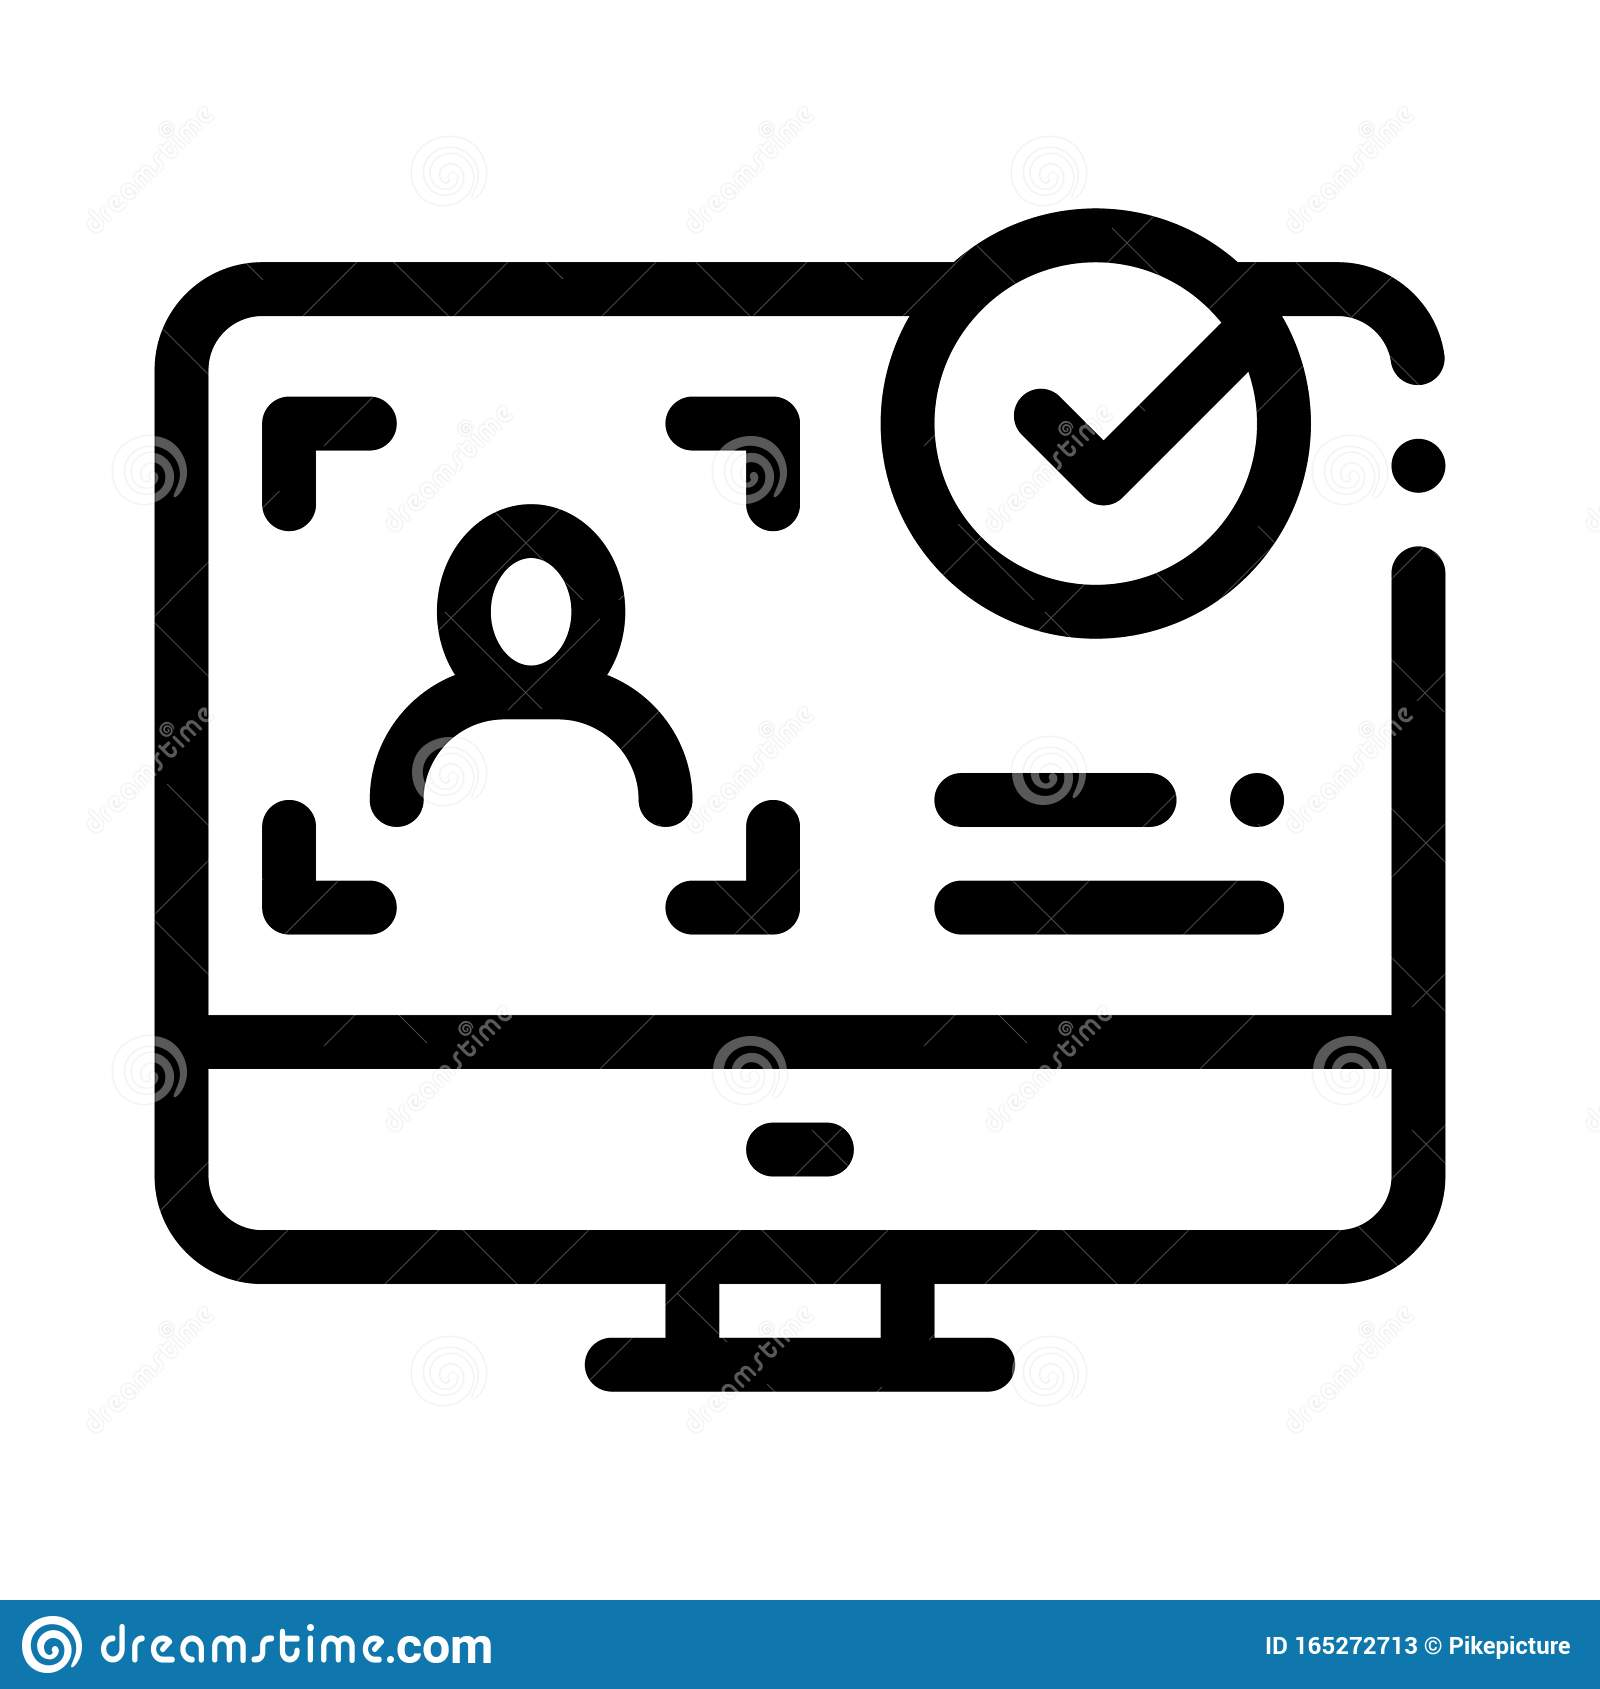 computer person identity icon vector outline illustration stock vector illustration of black lined 165272713 dreamstime com